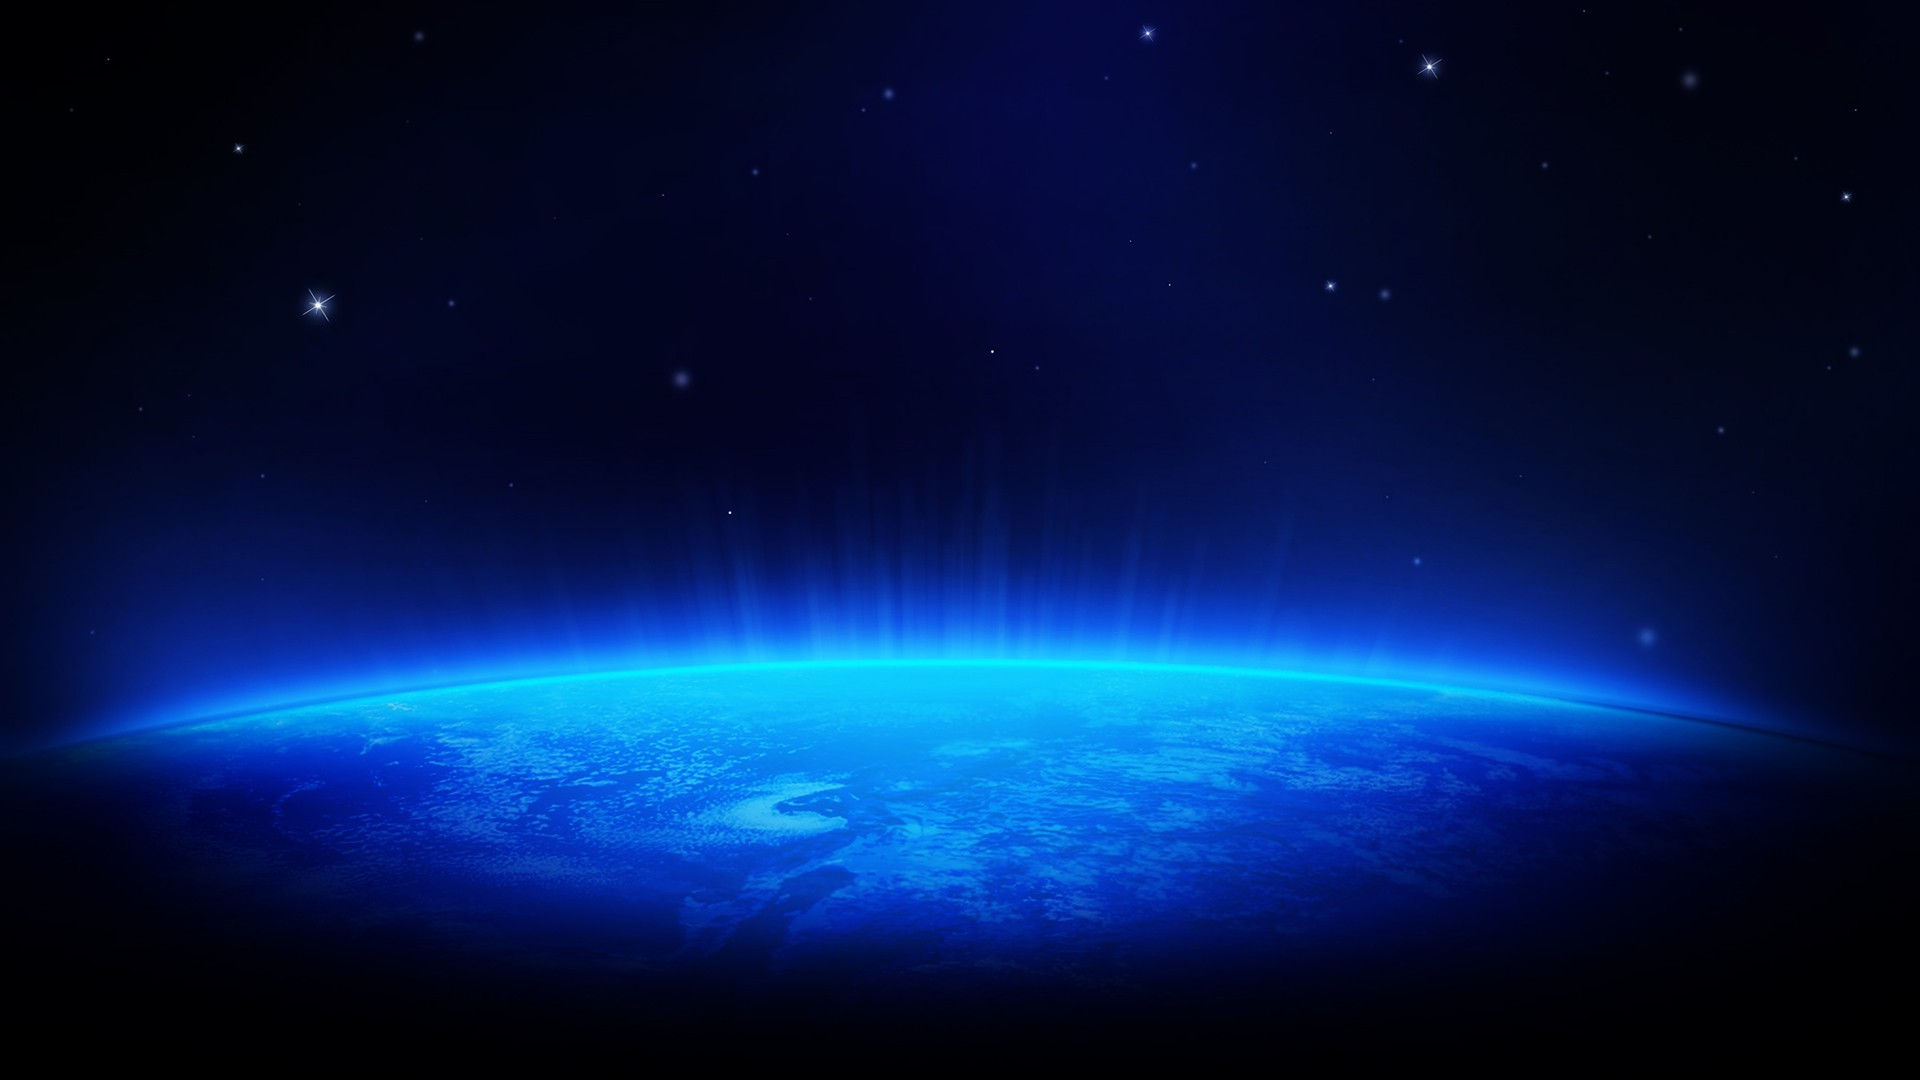 1080p space wallpaper download free high resolution for 1080p 1920x1080